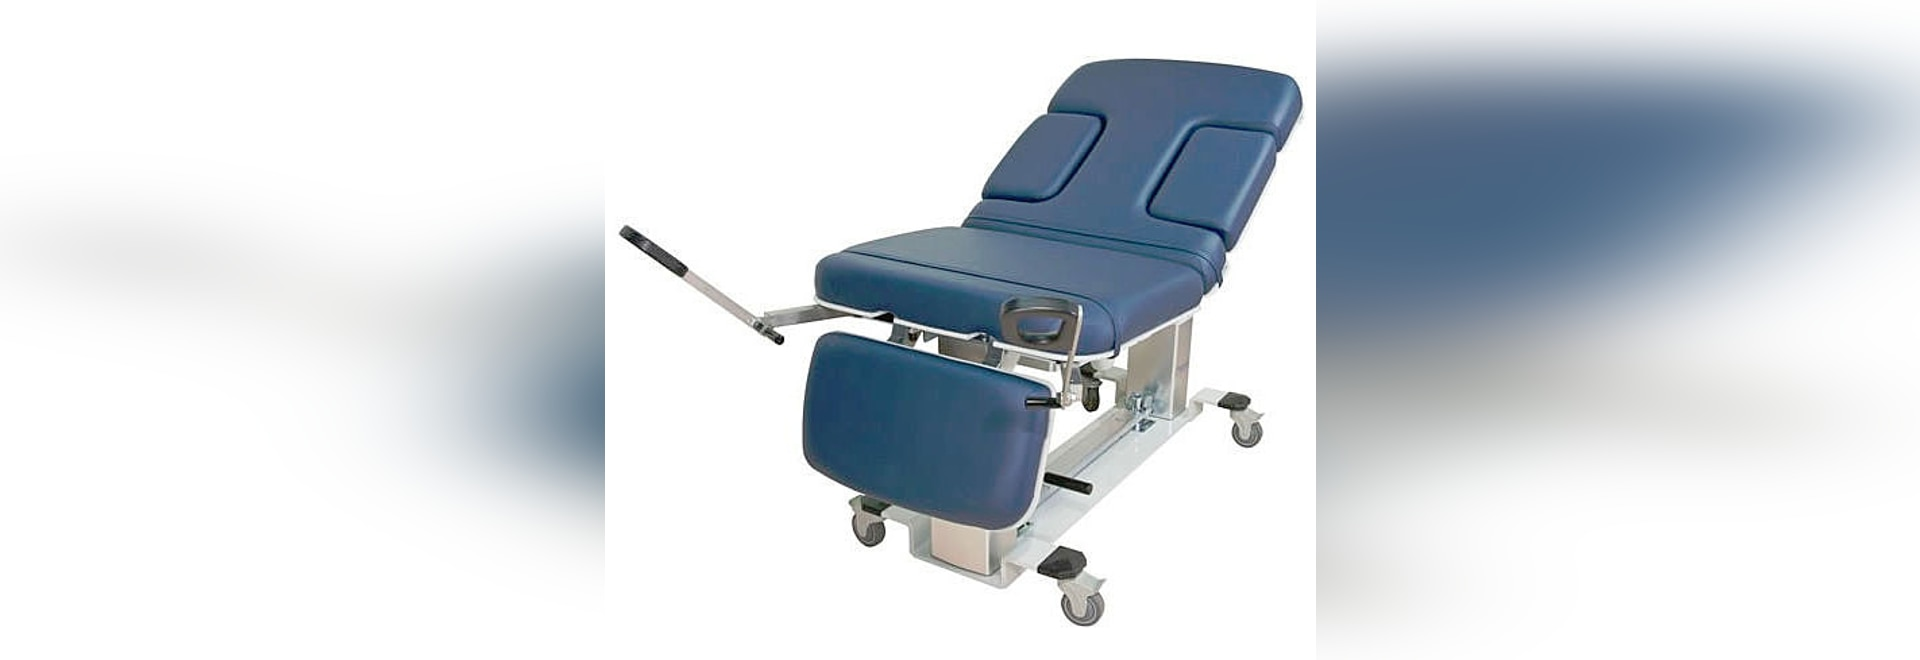 The Ultrasound  Multi-specialty table  by Oakworks Medical